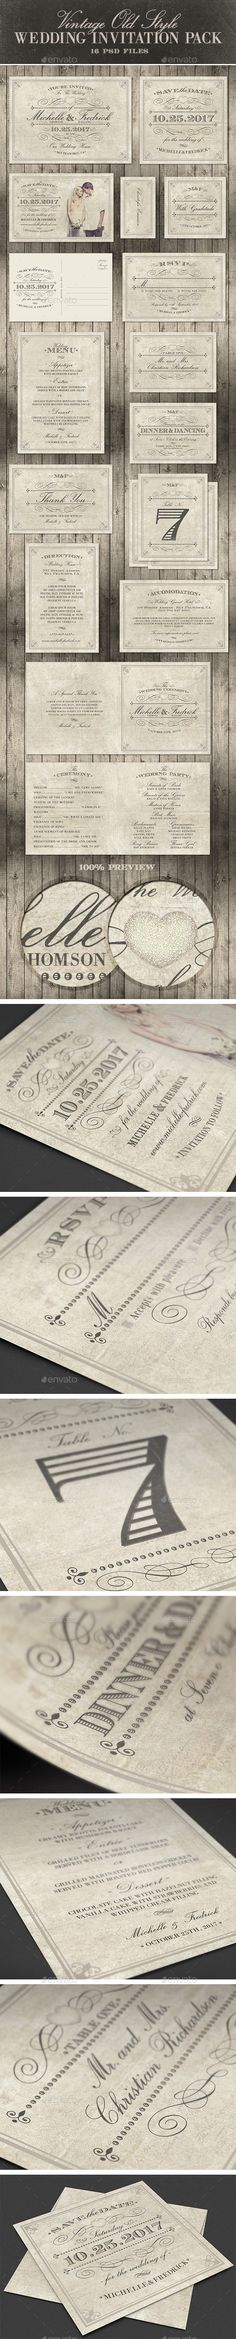 VINTAGE!! Old style wedding invitation pack. #vintage Visit and download here https://graphicriver.net/item/-wedding-invitation-package-vintage-old-style/8622557?s_rank=41?ref=arcford